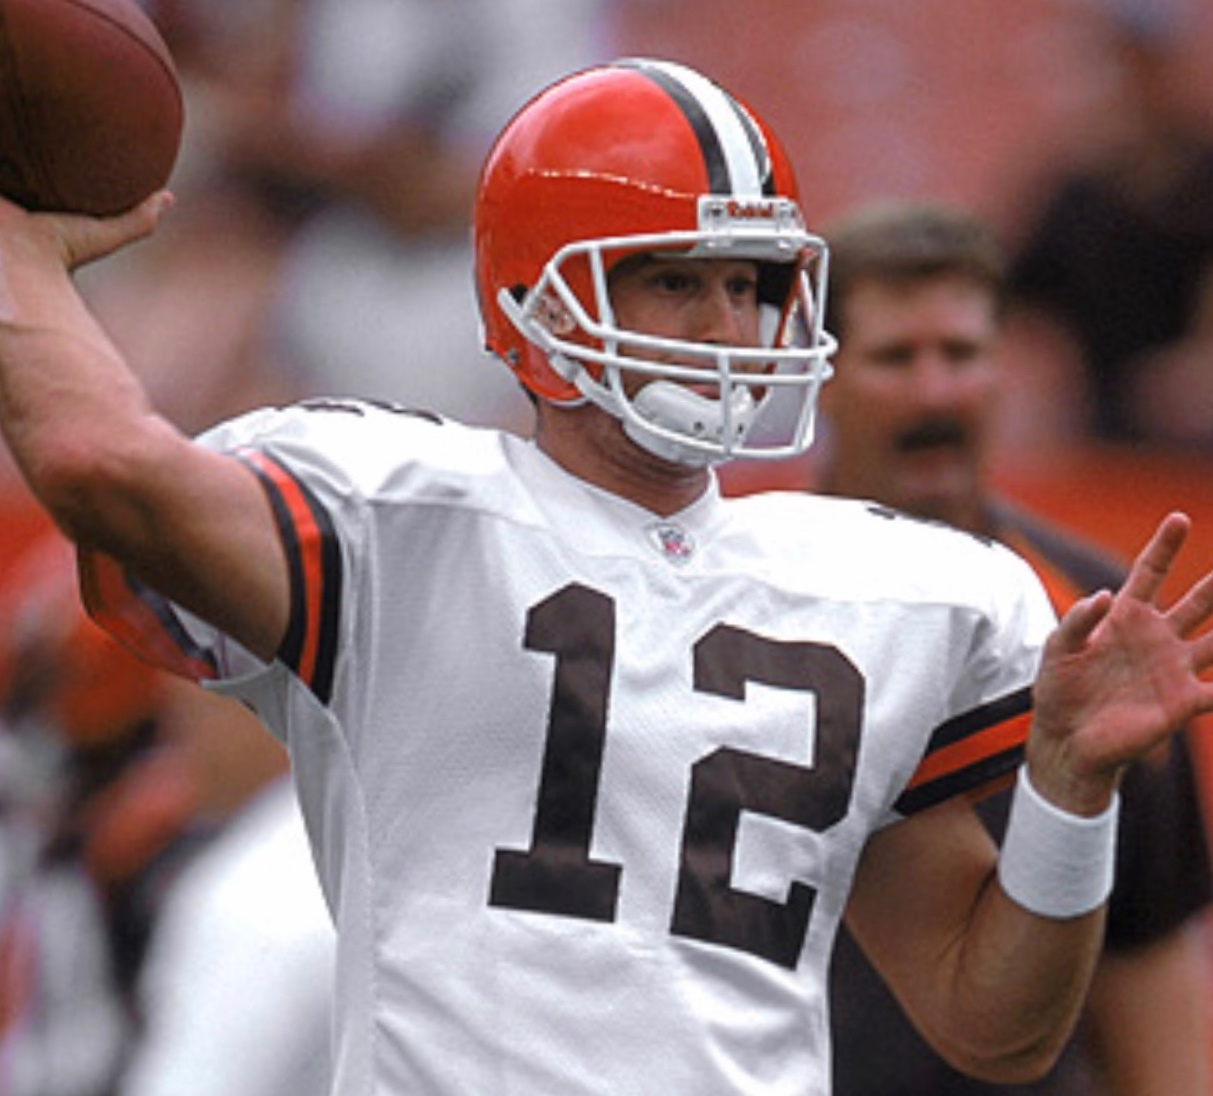 Josh Booty, Former Quarterback for the Cleveland Browns